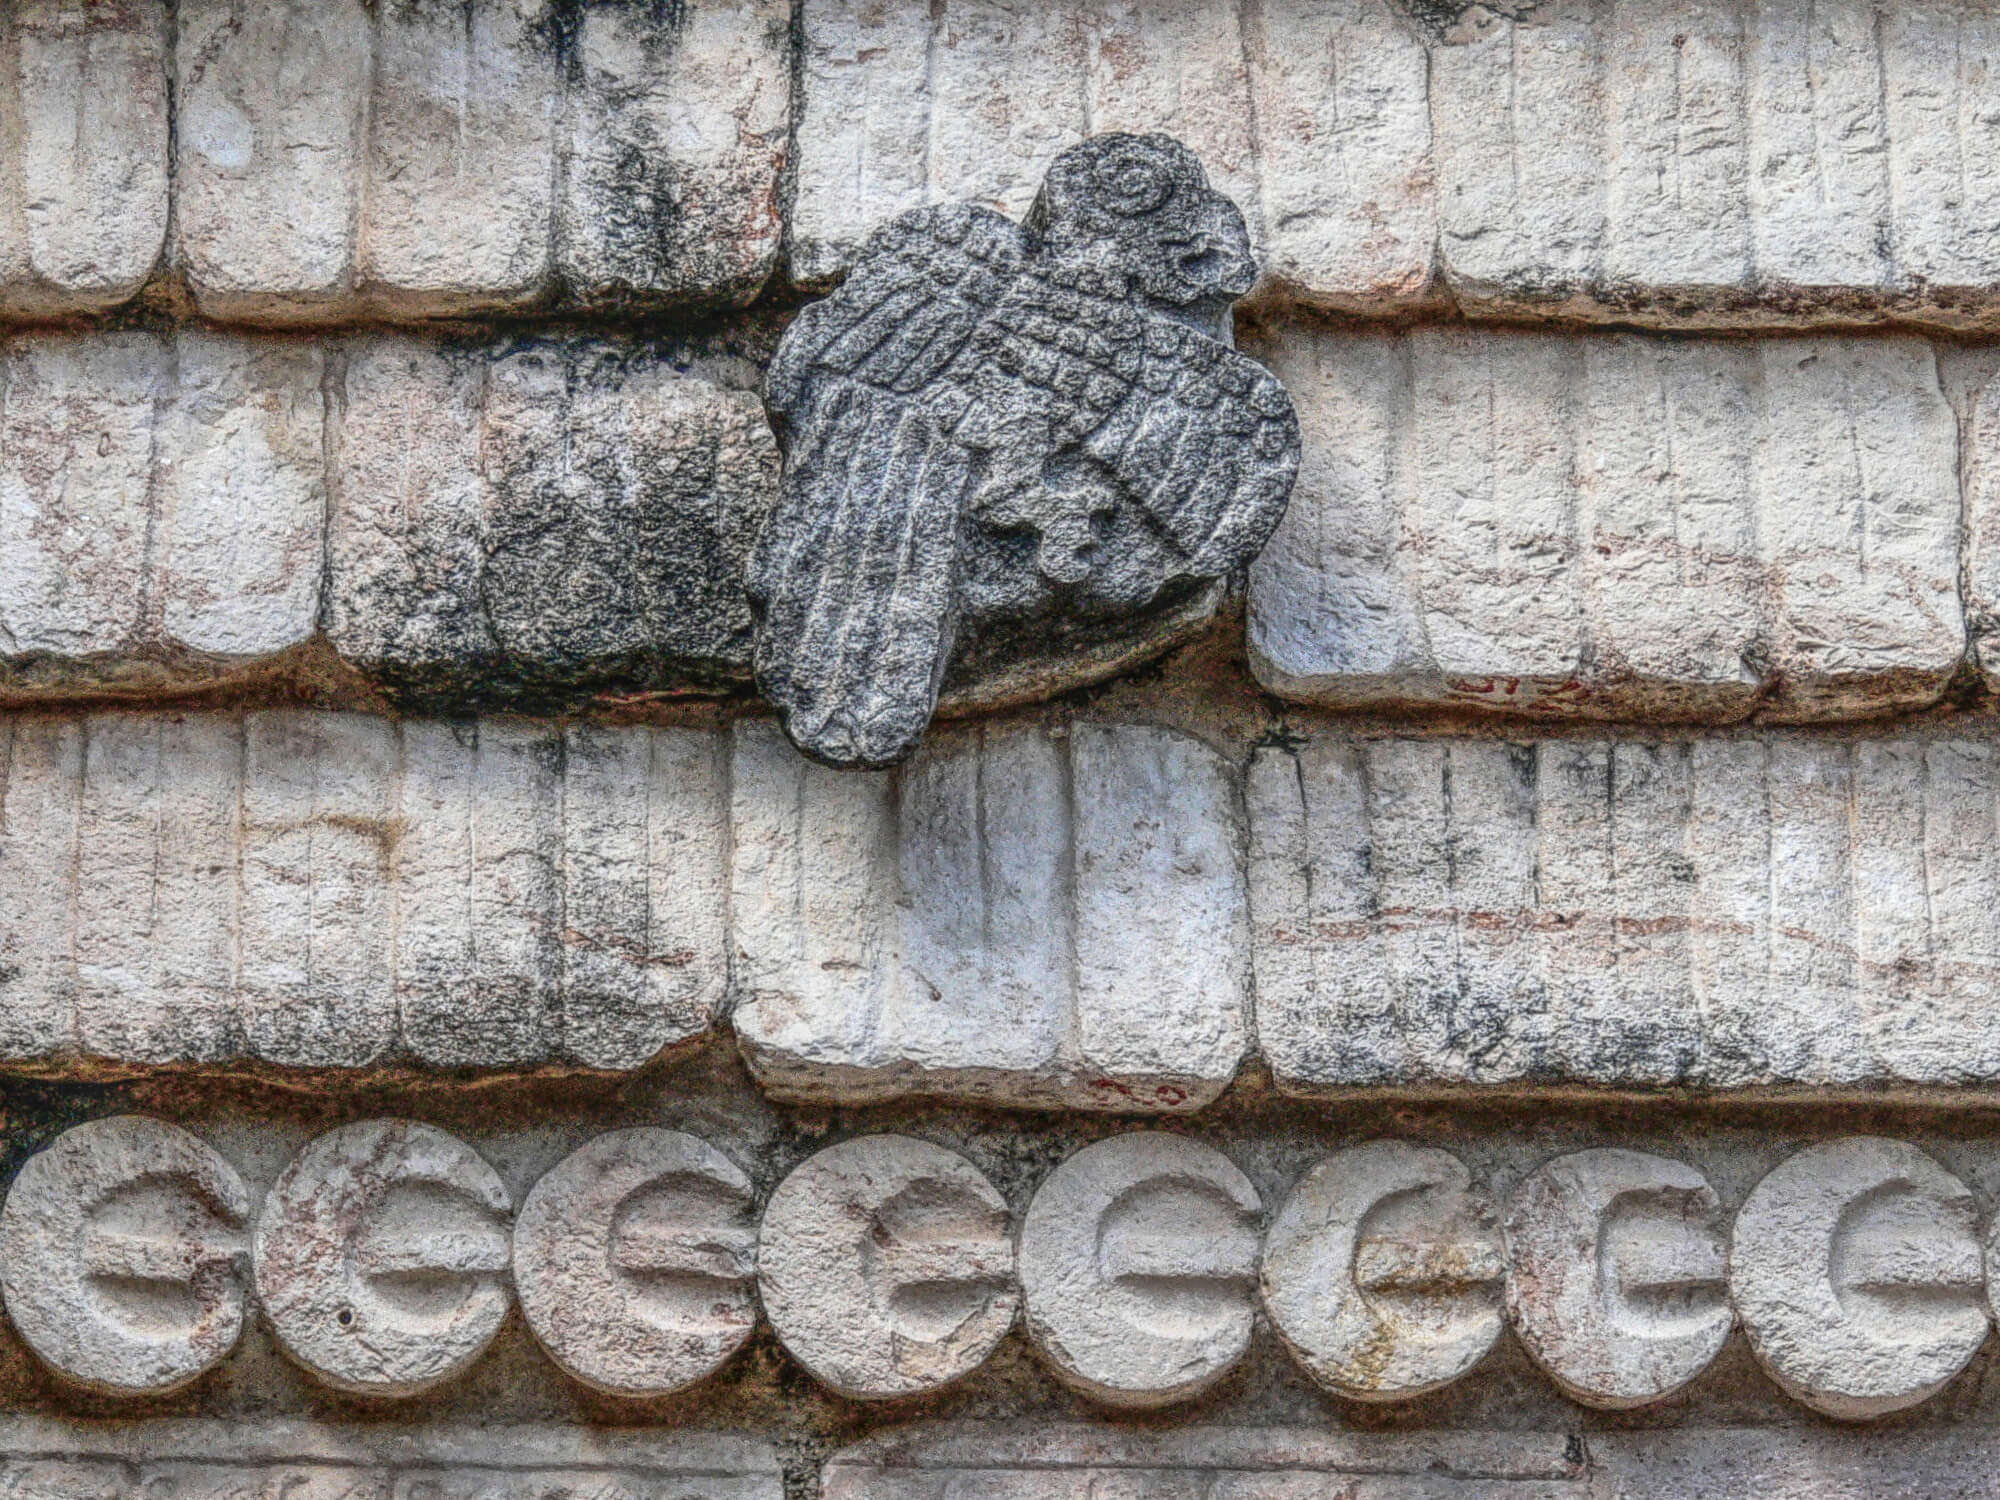 A Macaw in the Quadrangle of the Birds east building in Uxmal